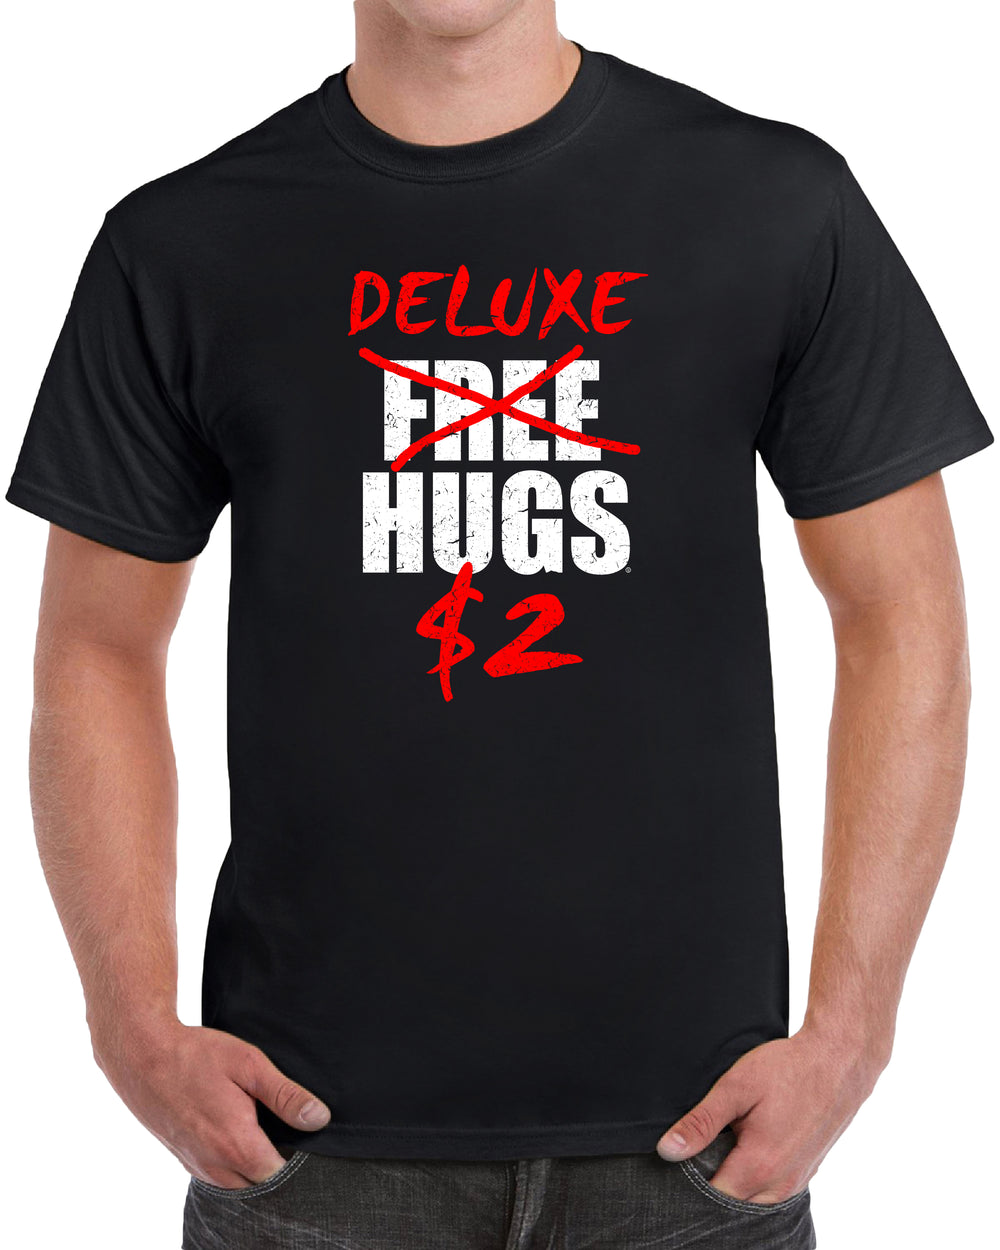 Deluxe Free Hugs for Two Dollars - Distressed Print